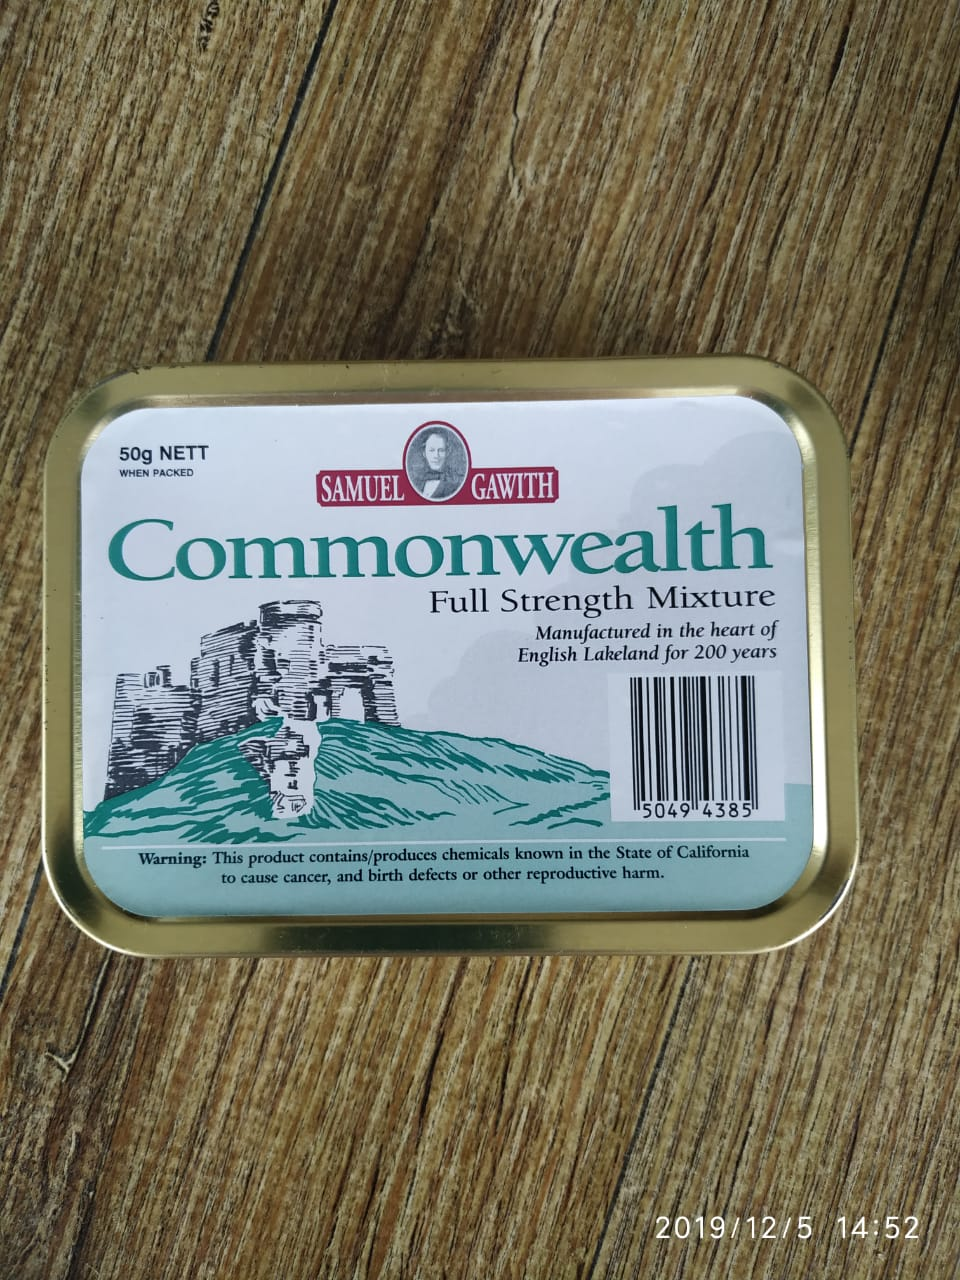 Samuel Gawith - Commonwealth Mixture